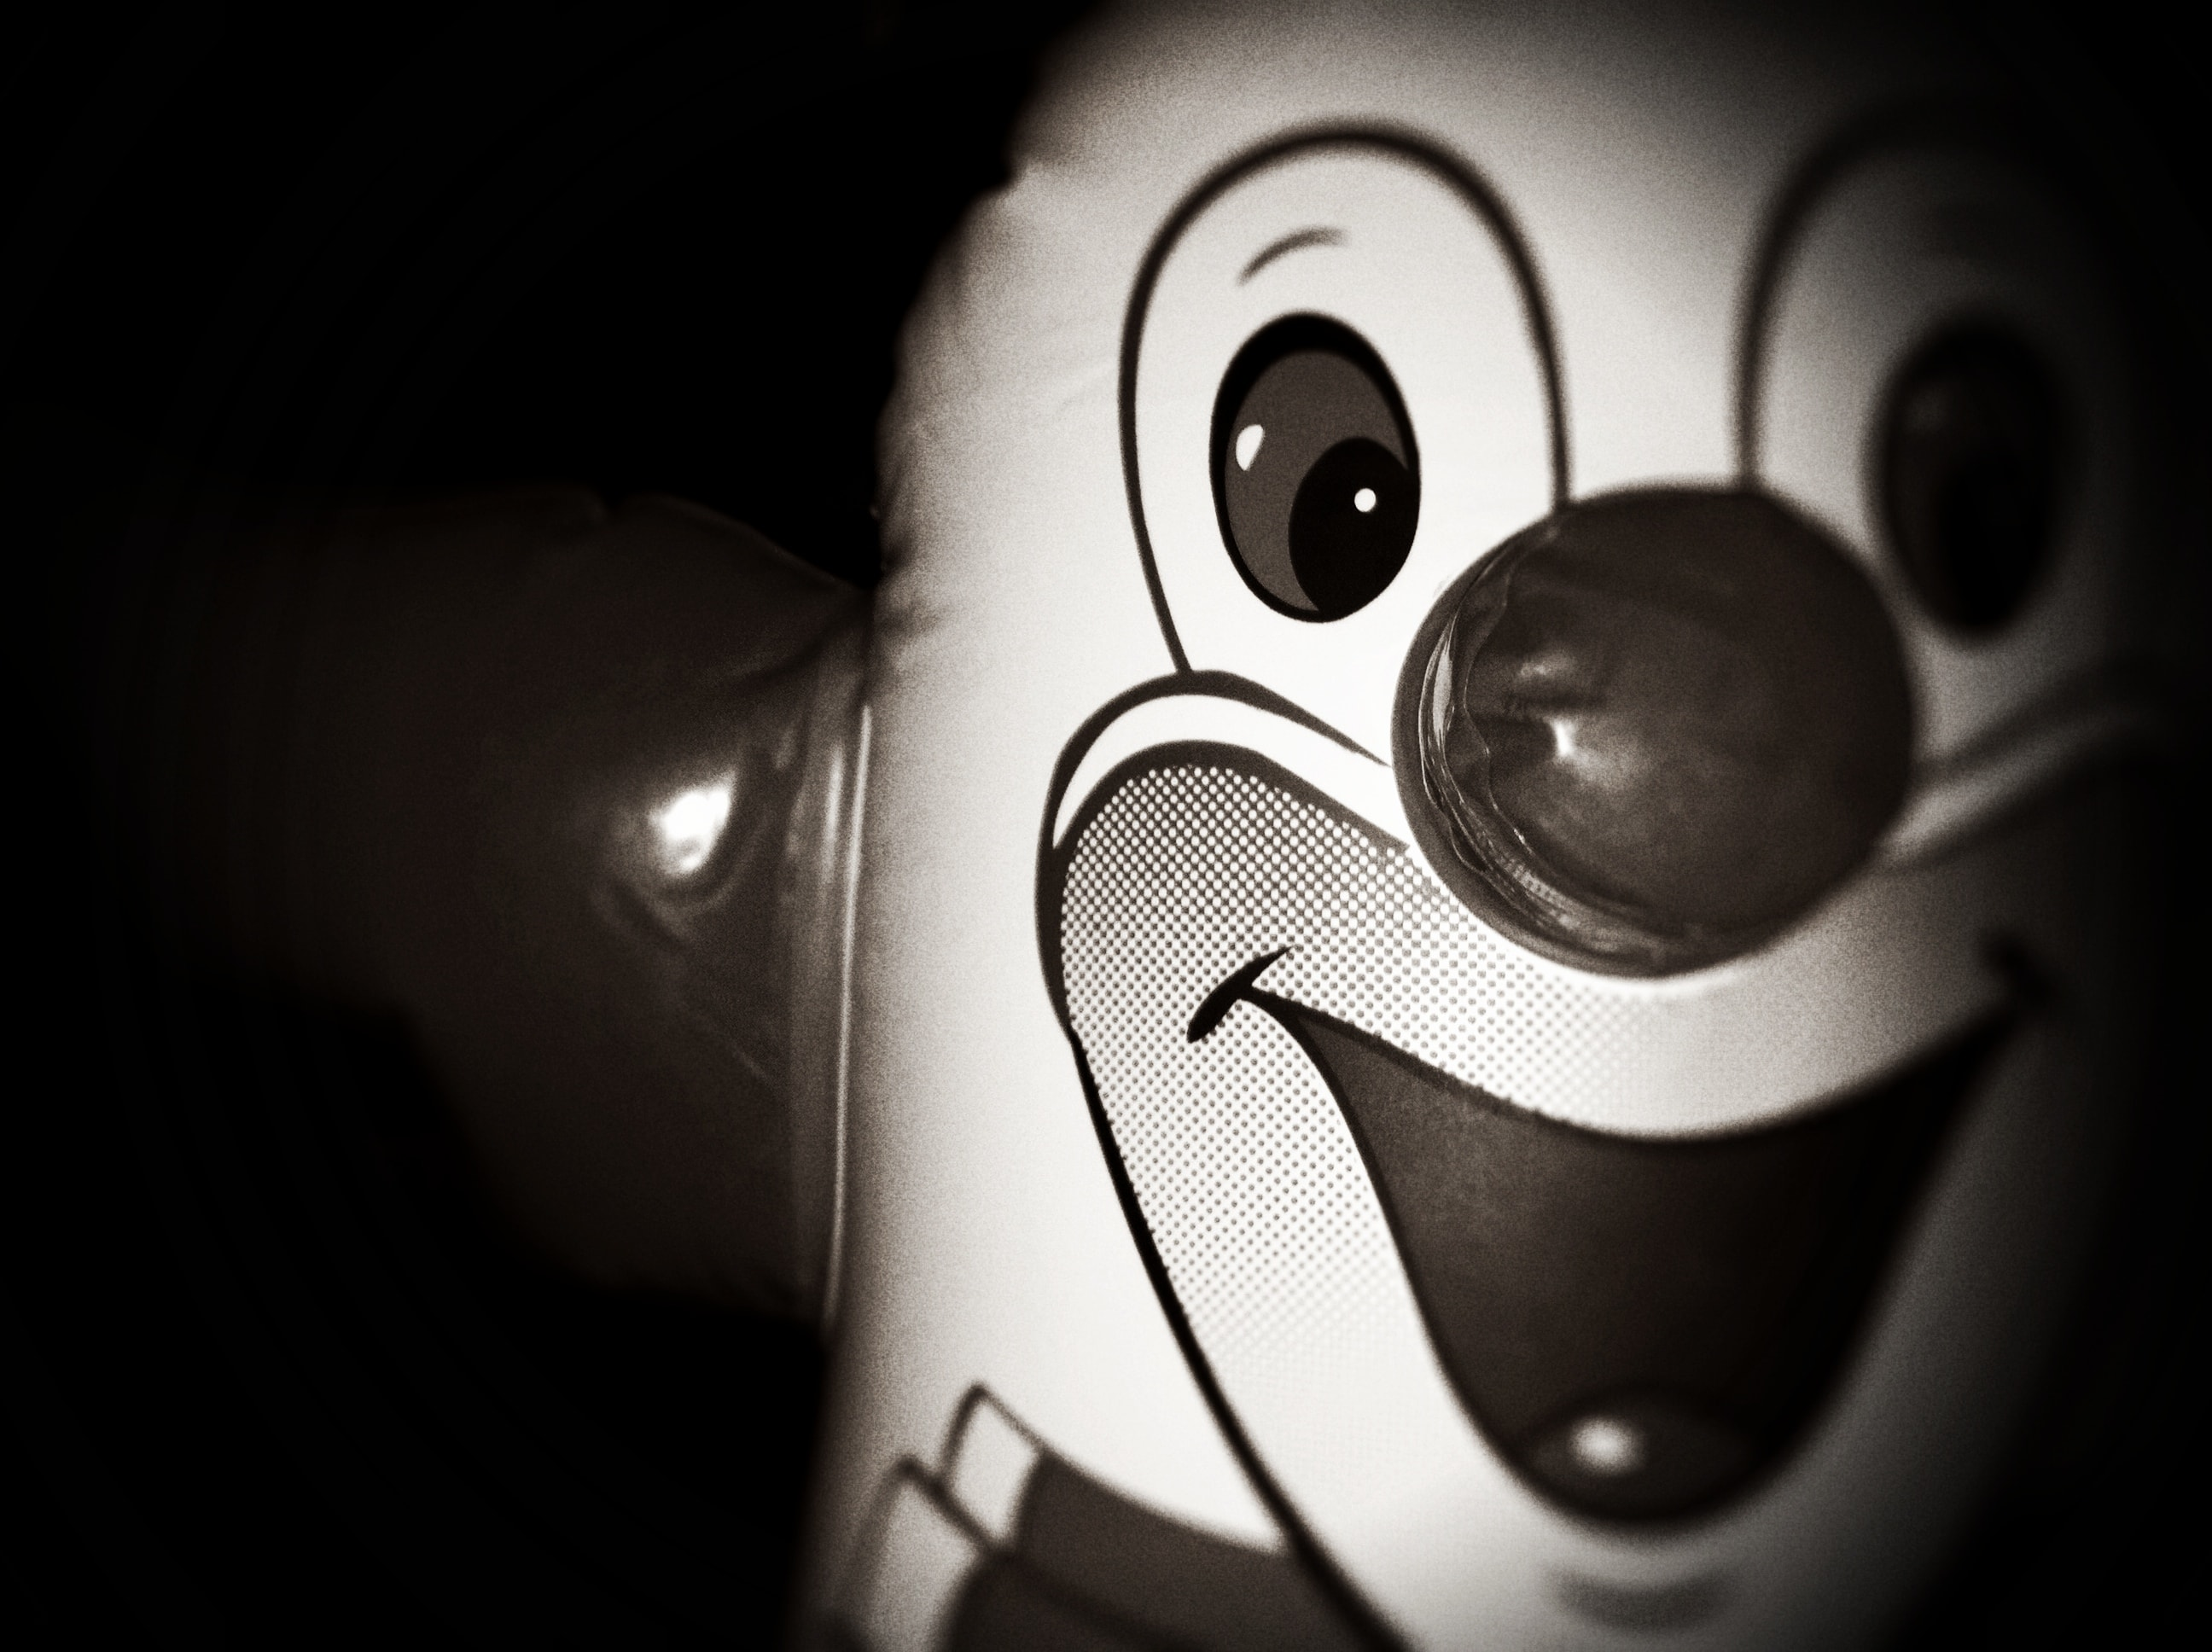 A clown balloon